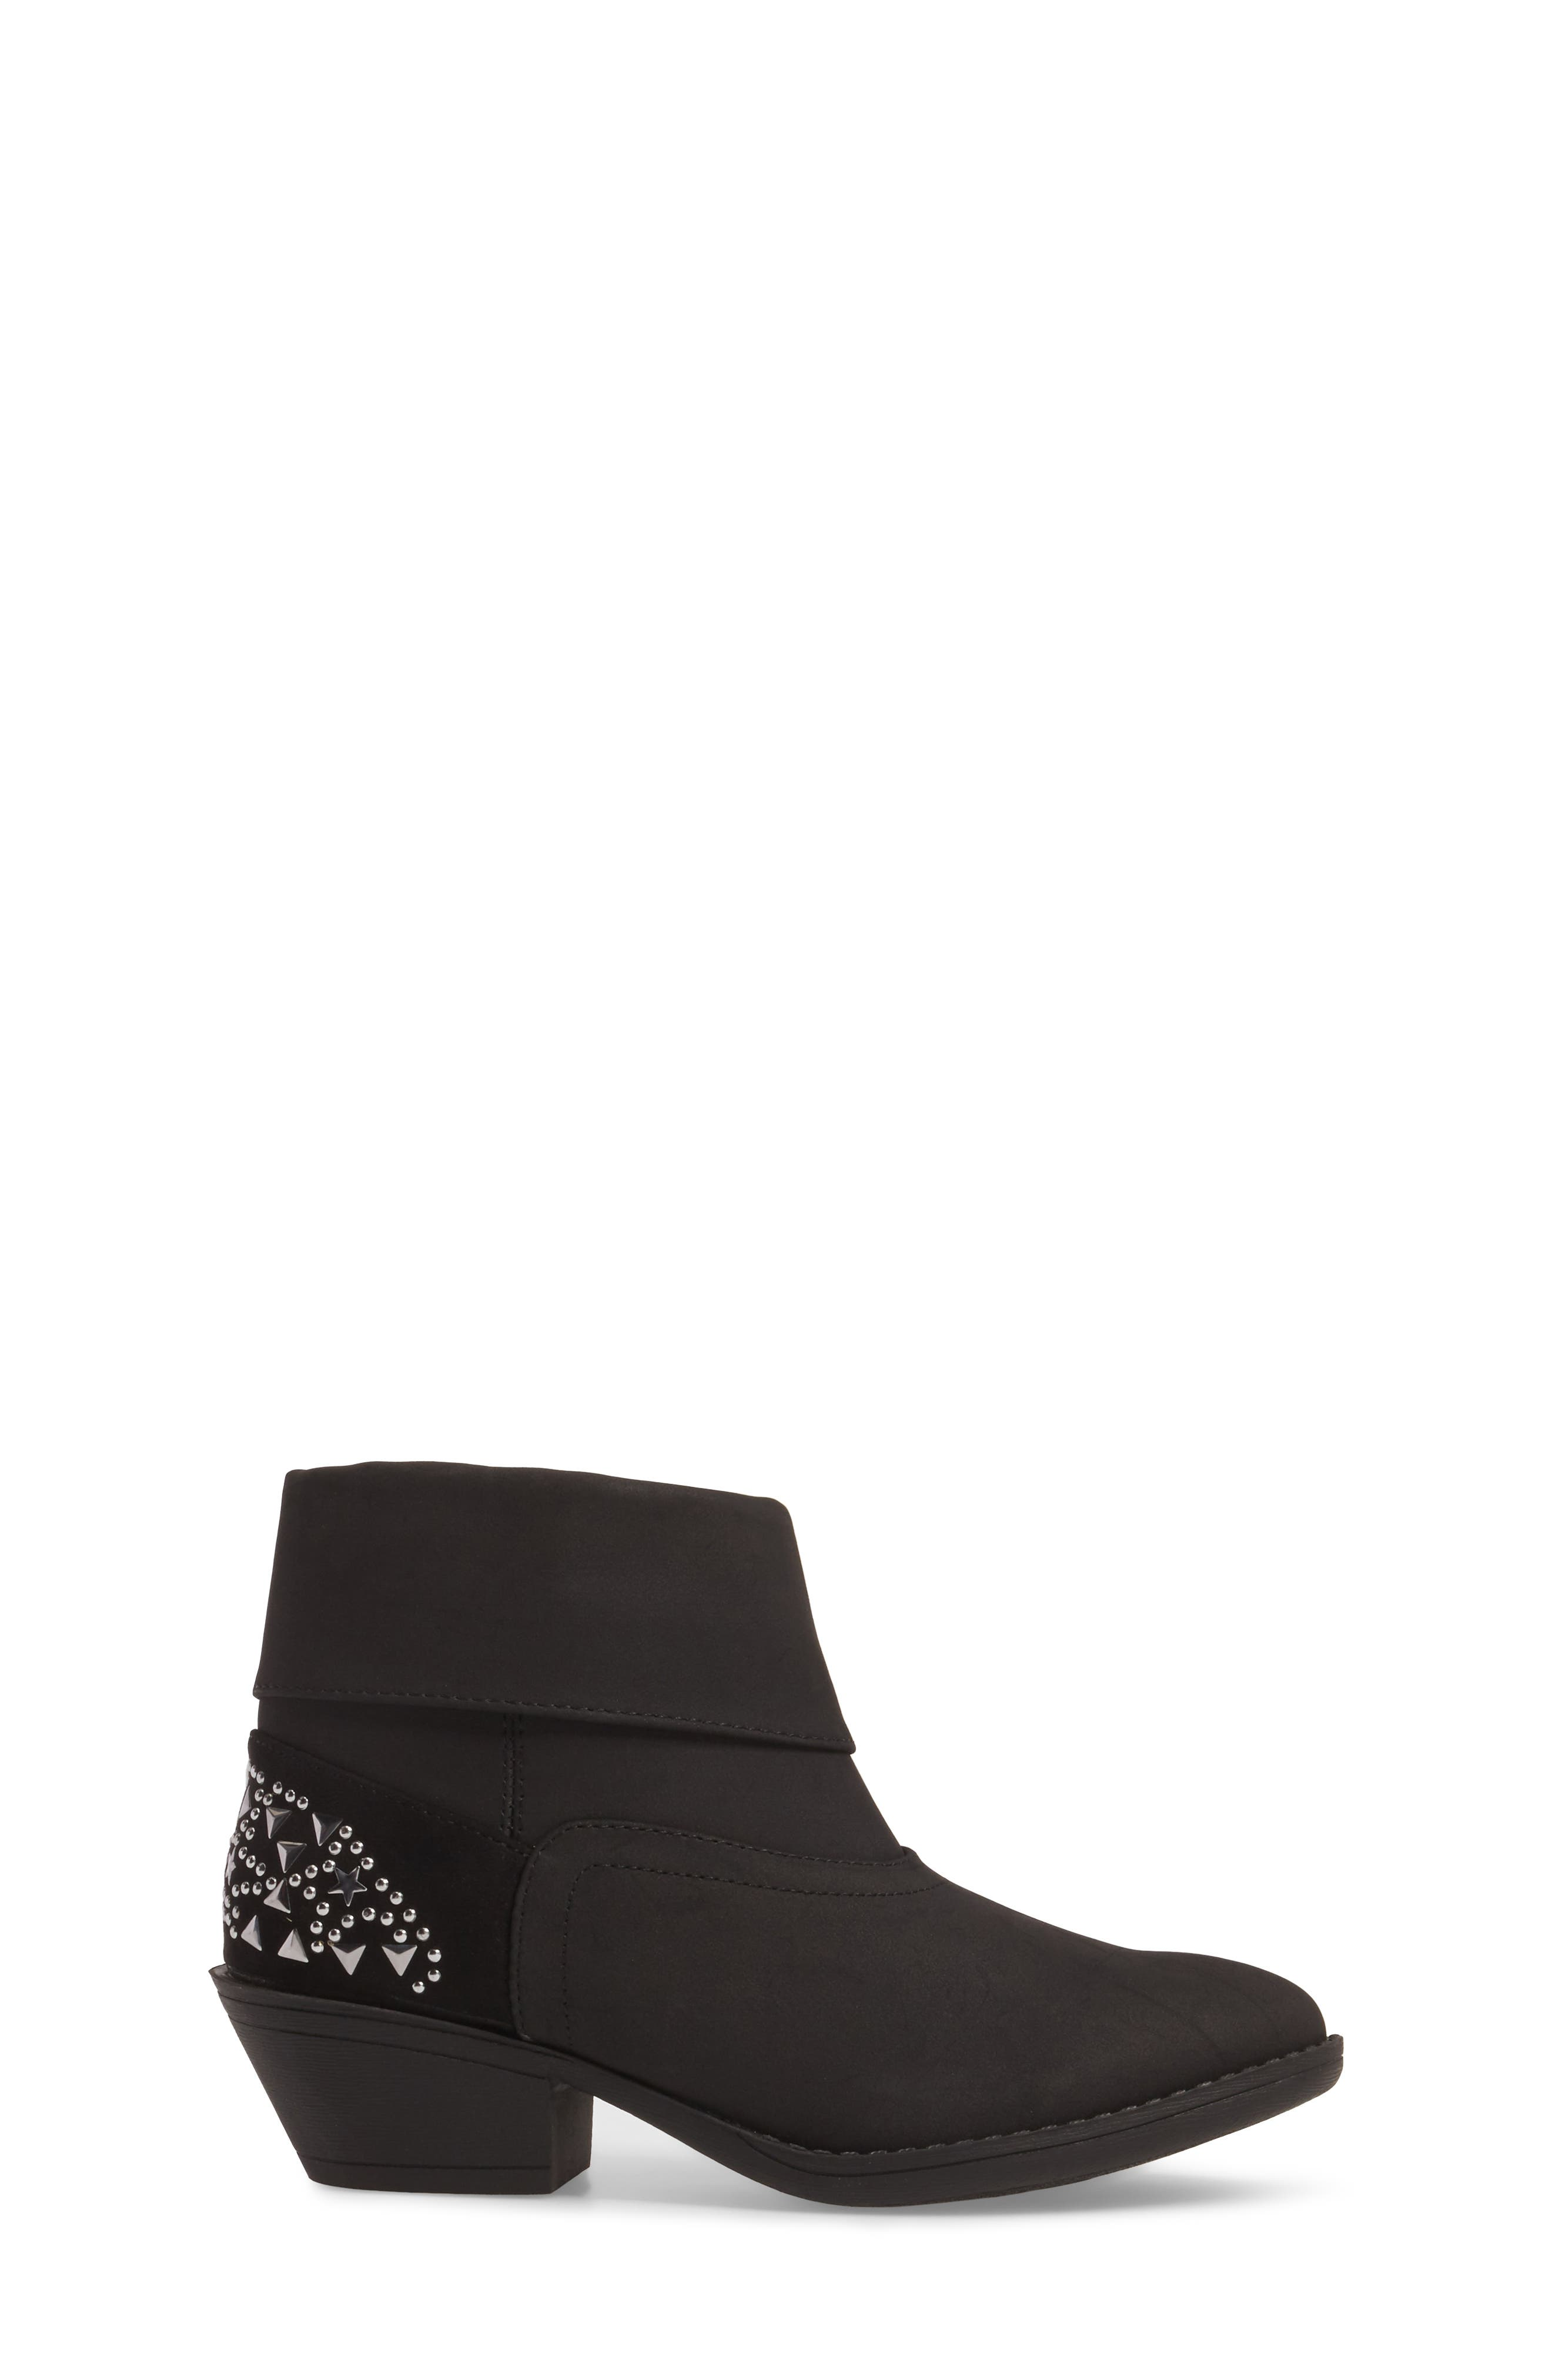 Alternate Image 3  - Reaction Kenneth Cole Taylor Star Bootie (Toddler, Little Kid & Big Kid)